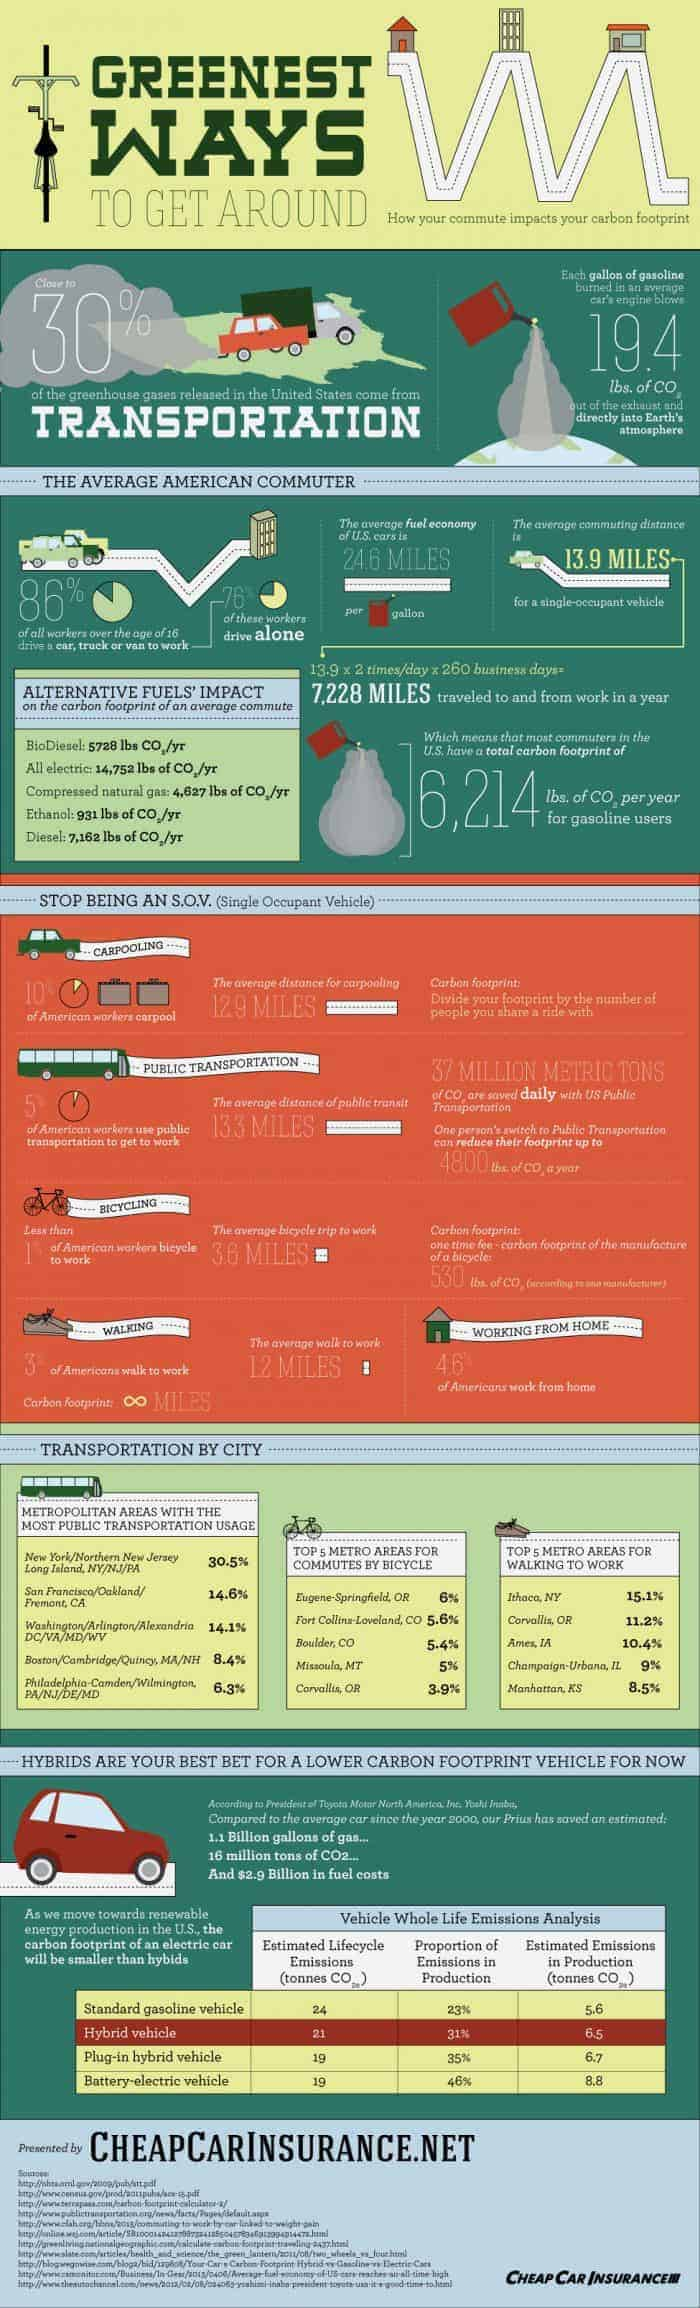 greenest-ways-to-get-around-infographic